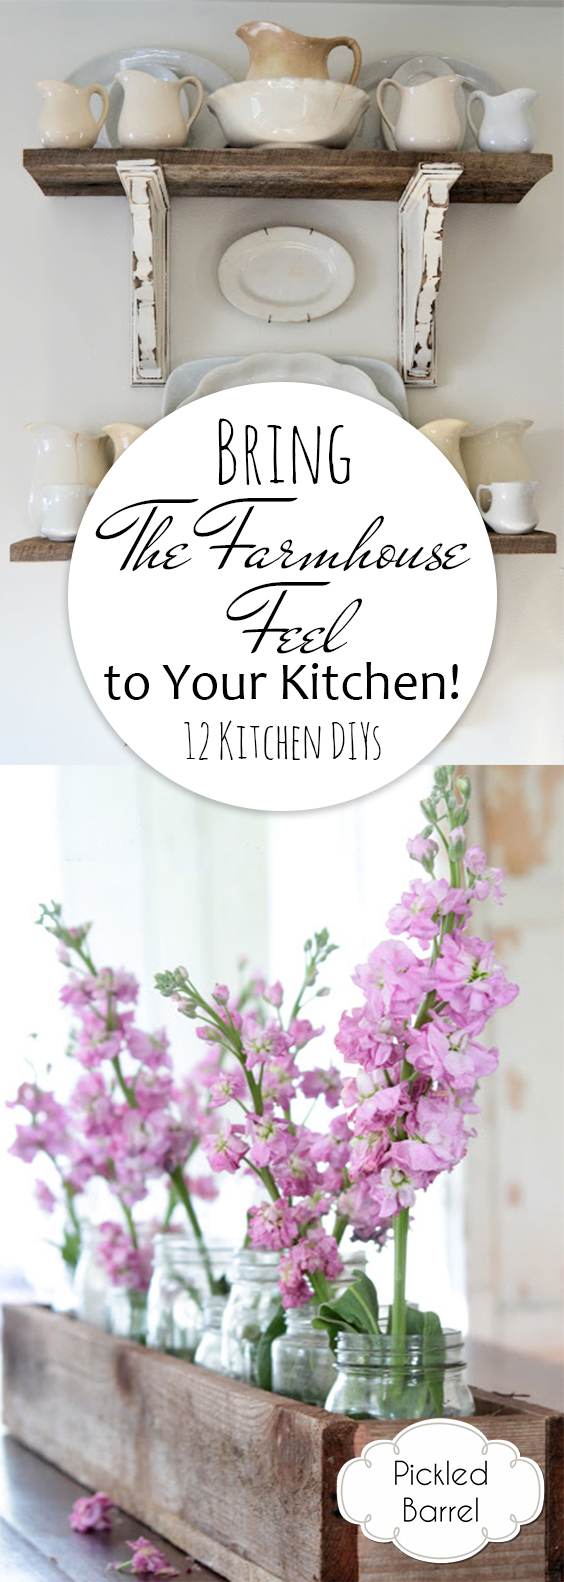 Bring a Farmhouse Feel to Your Kitchen! {12 Kitchen DIYs} Farmhouse Kitchen, Farmhouse Kitchen DIY, Kitchen DIY Projects, DIY Projects for the Kitchen, Farmhouse Decor for the Kitchen, Kitchen Farmhouse Decor, DIY Home Decor, DIY Kitchen Decor, Popular Pin